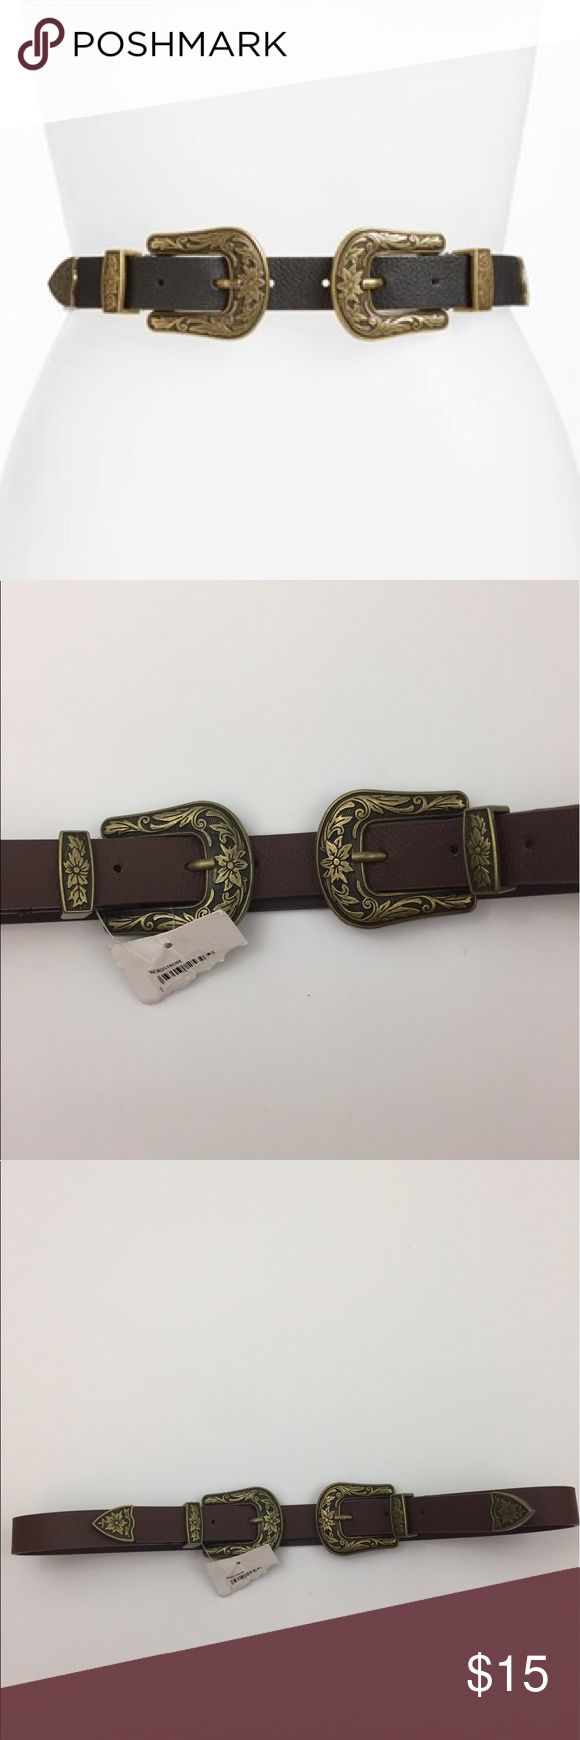 Double Buckle Belt Brown/Brass NEW NWT Small/Med Brown faux leather belt with brass colored double buckle detail. By BP (Nordstrom). New with partial tag. Best fits a small/medium. Stock photo is shown in black, just to show style. See additional pictures for color. bp Accessories Belts